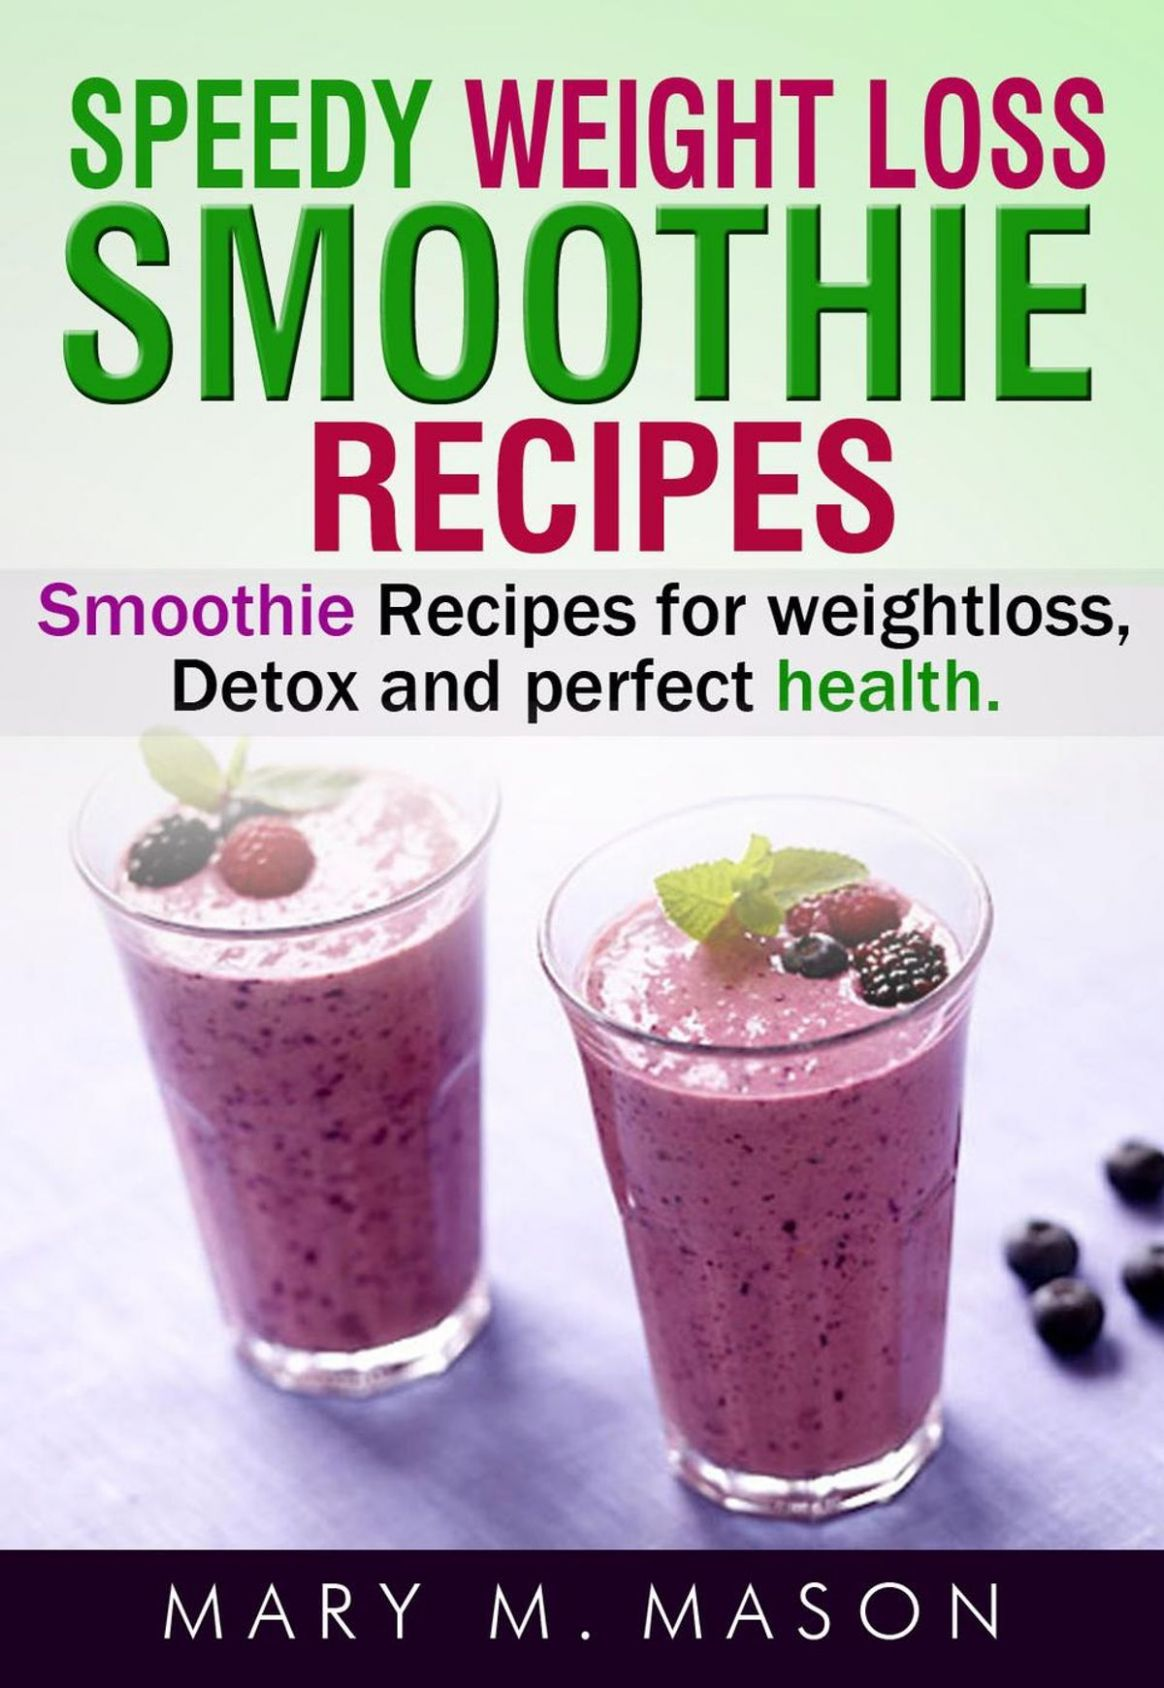 Speedy Weight Loss Smoothie Recipes Smoothie Recipes for Weight Loss, Detox  & Perfect Health ebook by Mary M